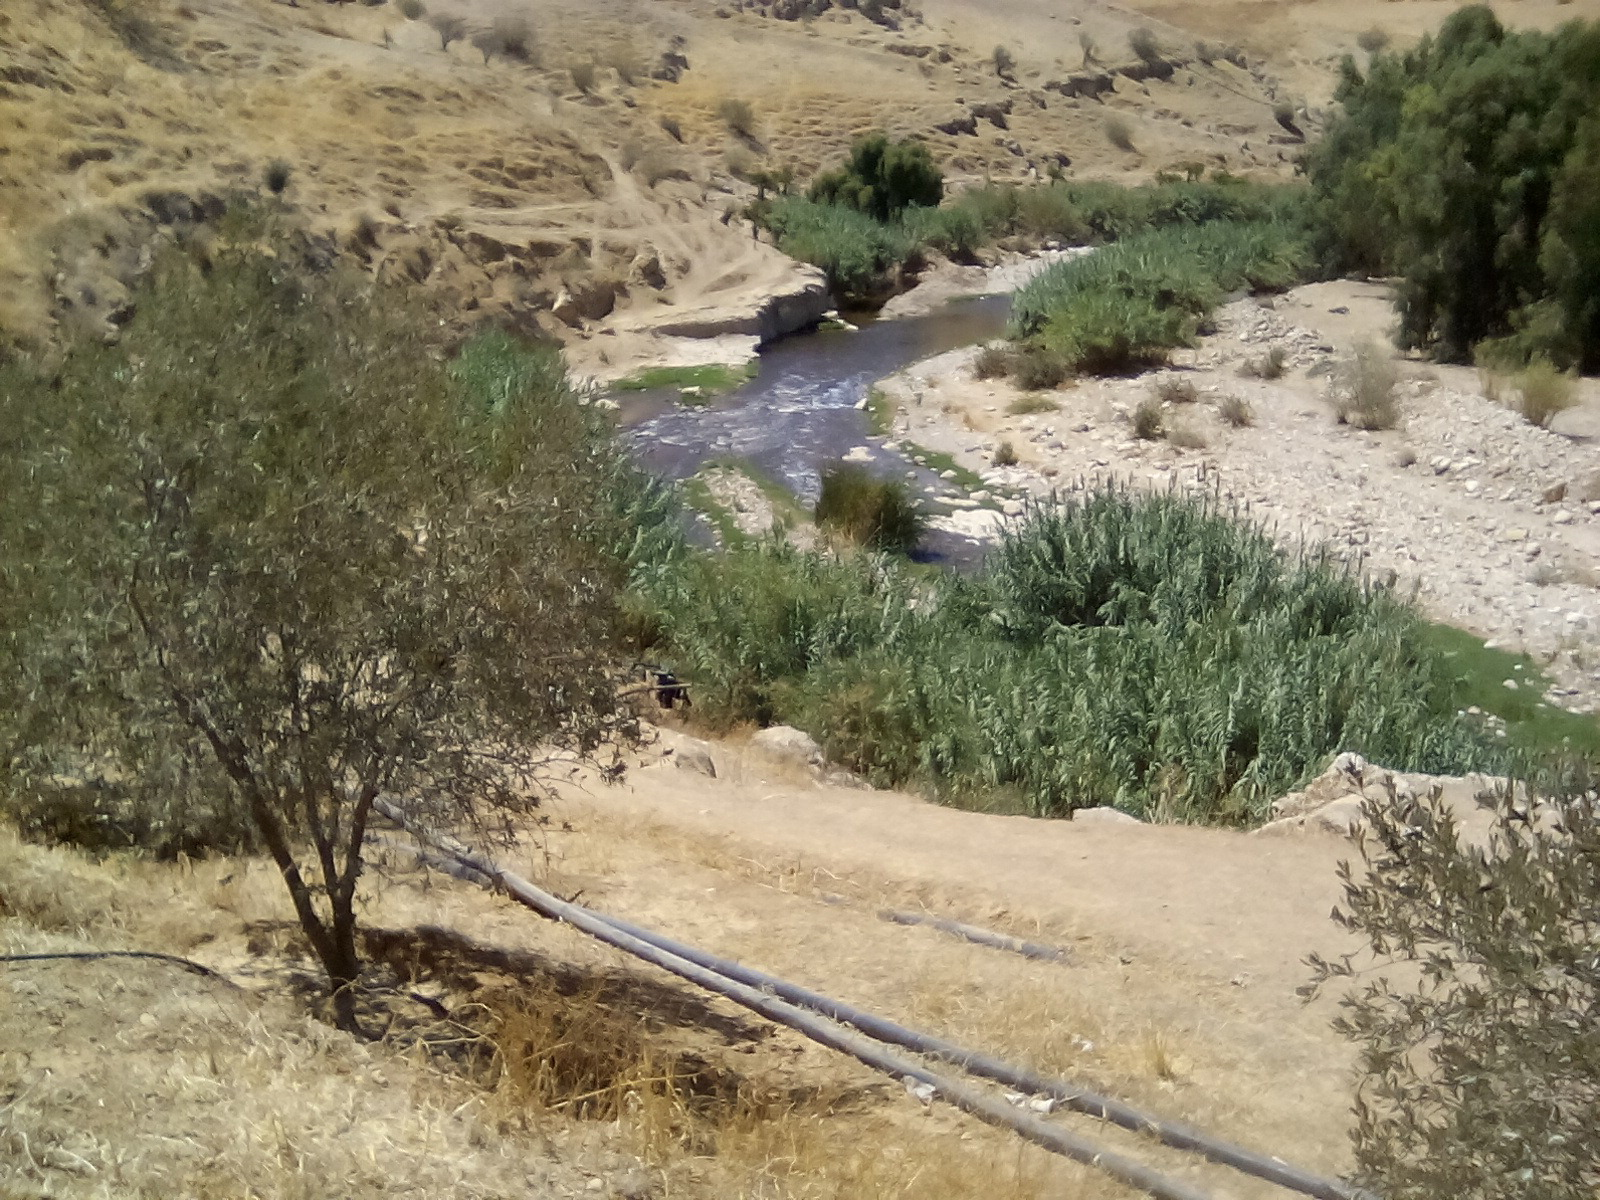 4-369_ Subsection of the upper Zarqa river reach (photo taken September 4 2016)